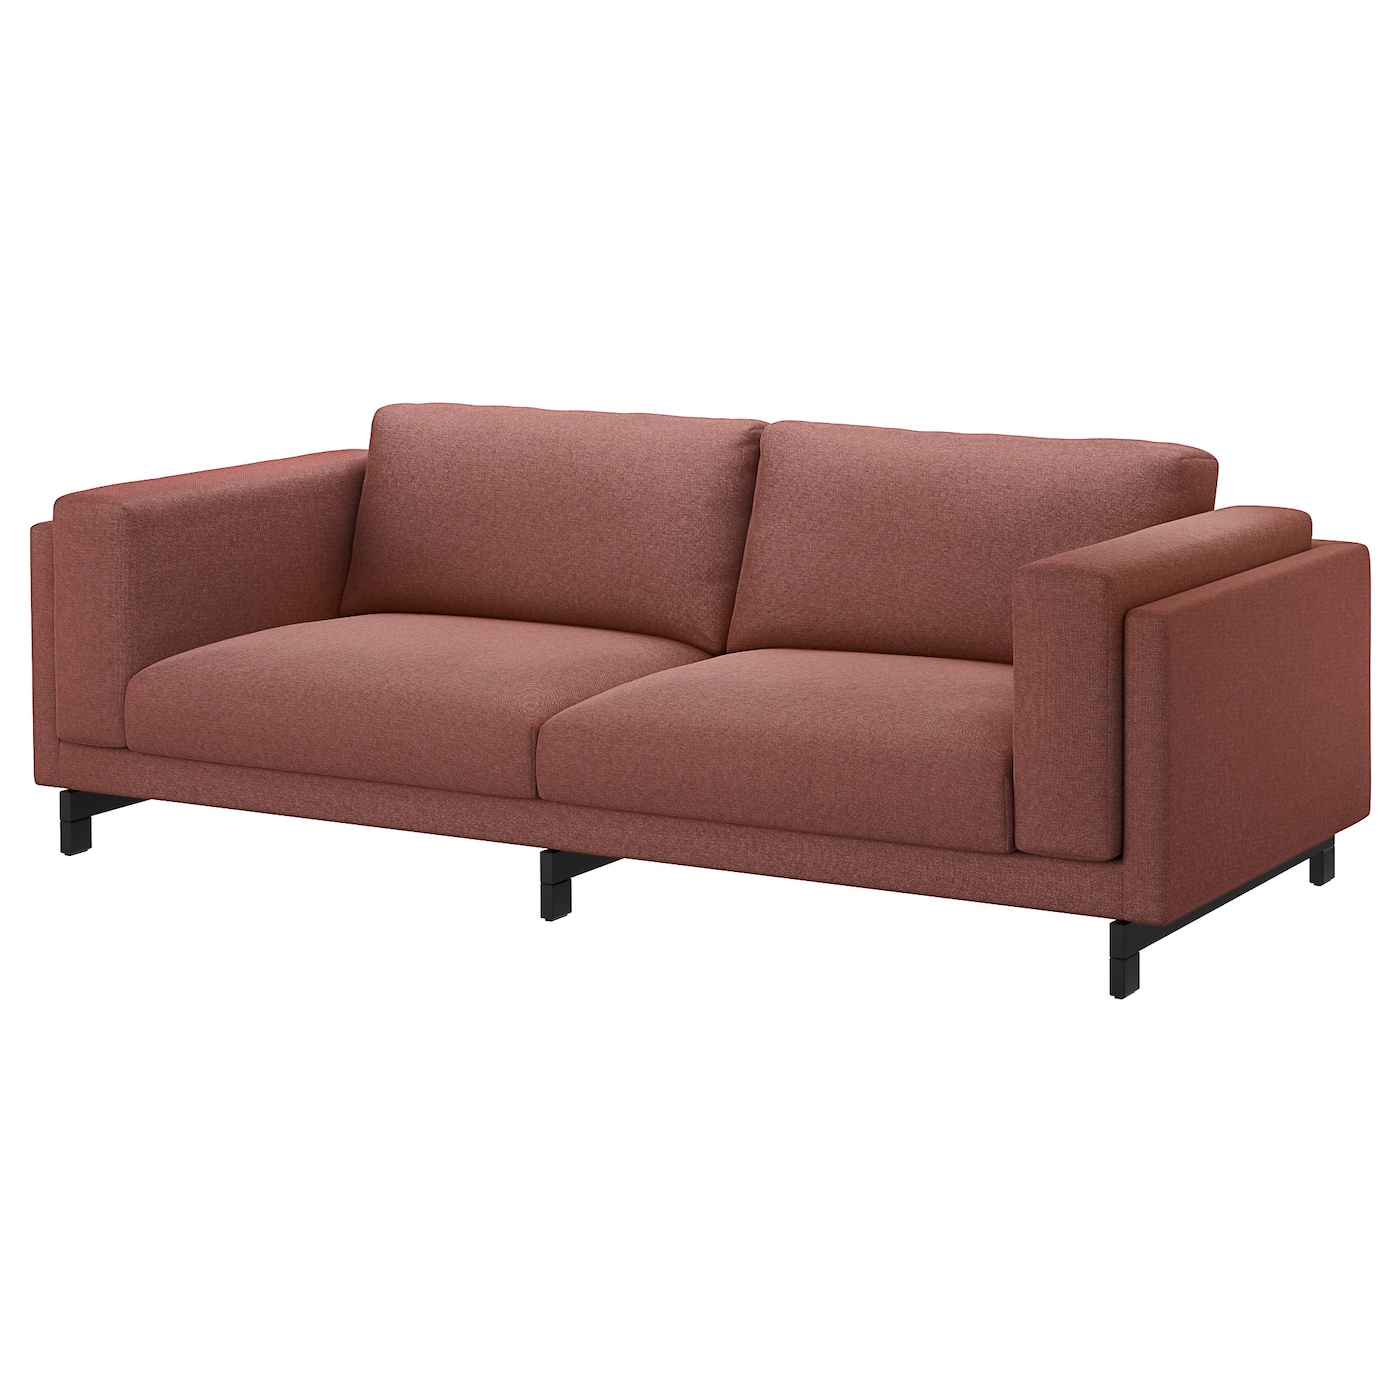 IKEA NOCKEBY three-seat sofa 10 year guarantee. Read about the terms in the guarantee brochure.